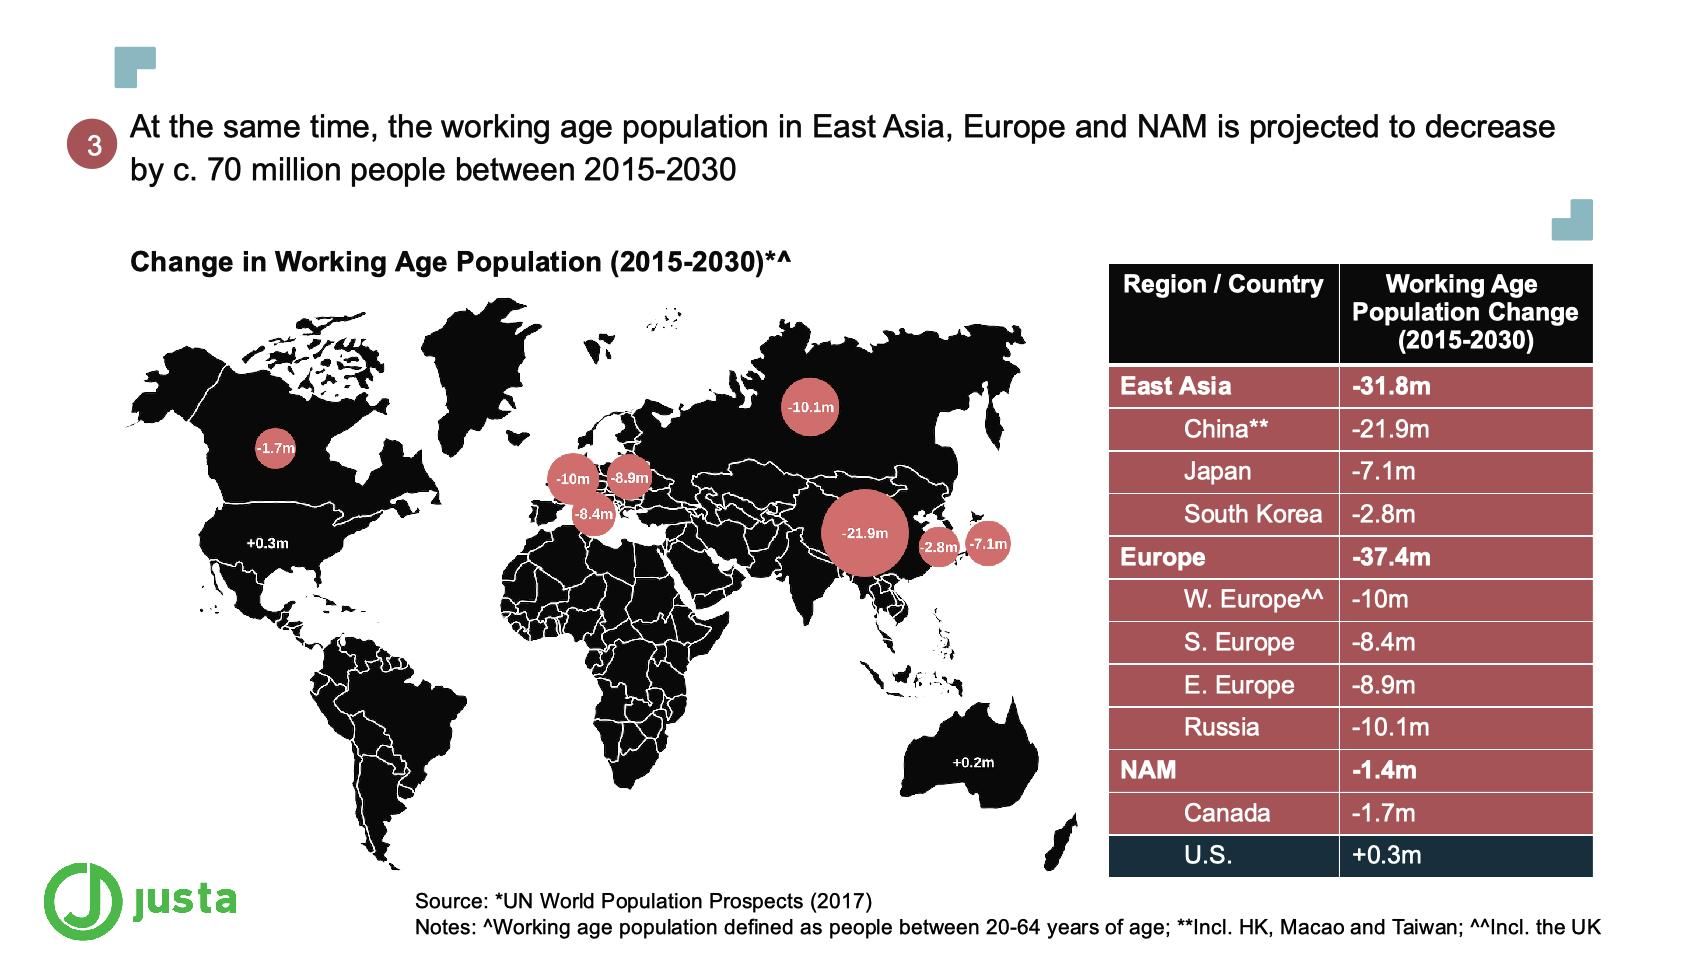 At the same time, the working age population in East Asia, Europe and NAM is projected to decrease by c. 70 million people between 2015-2030